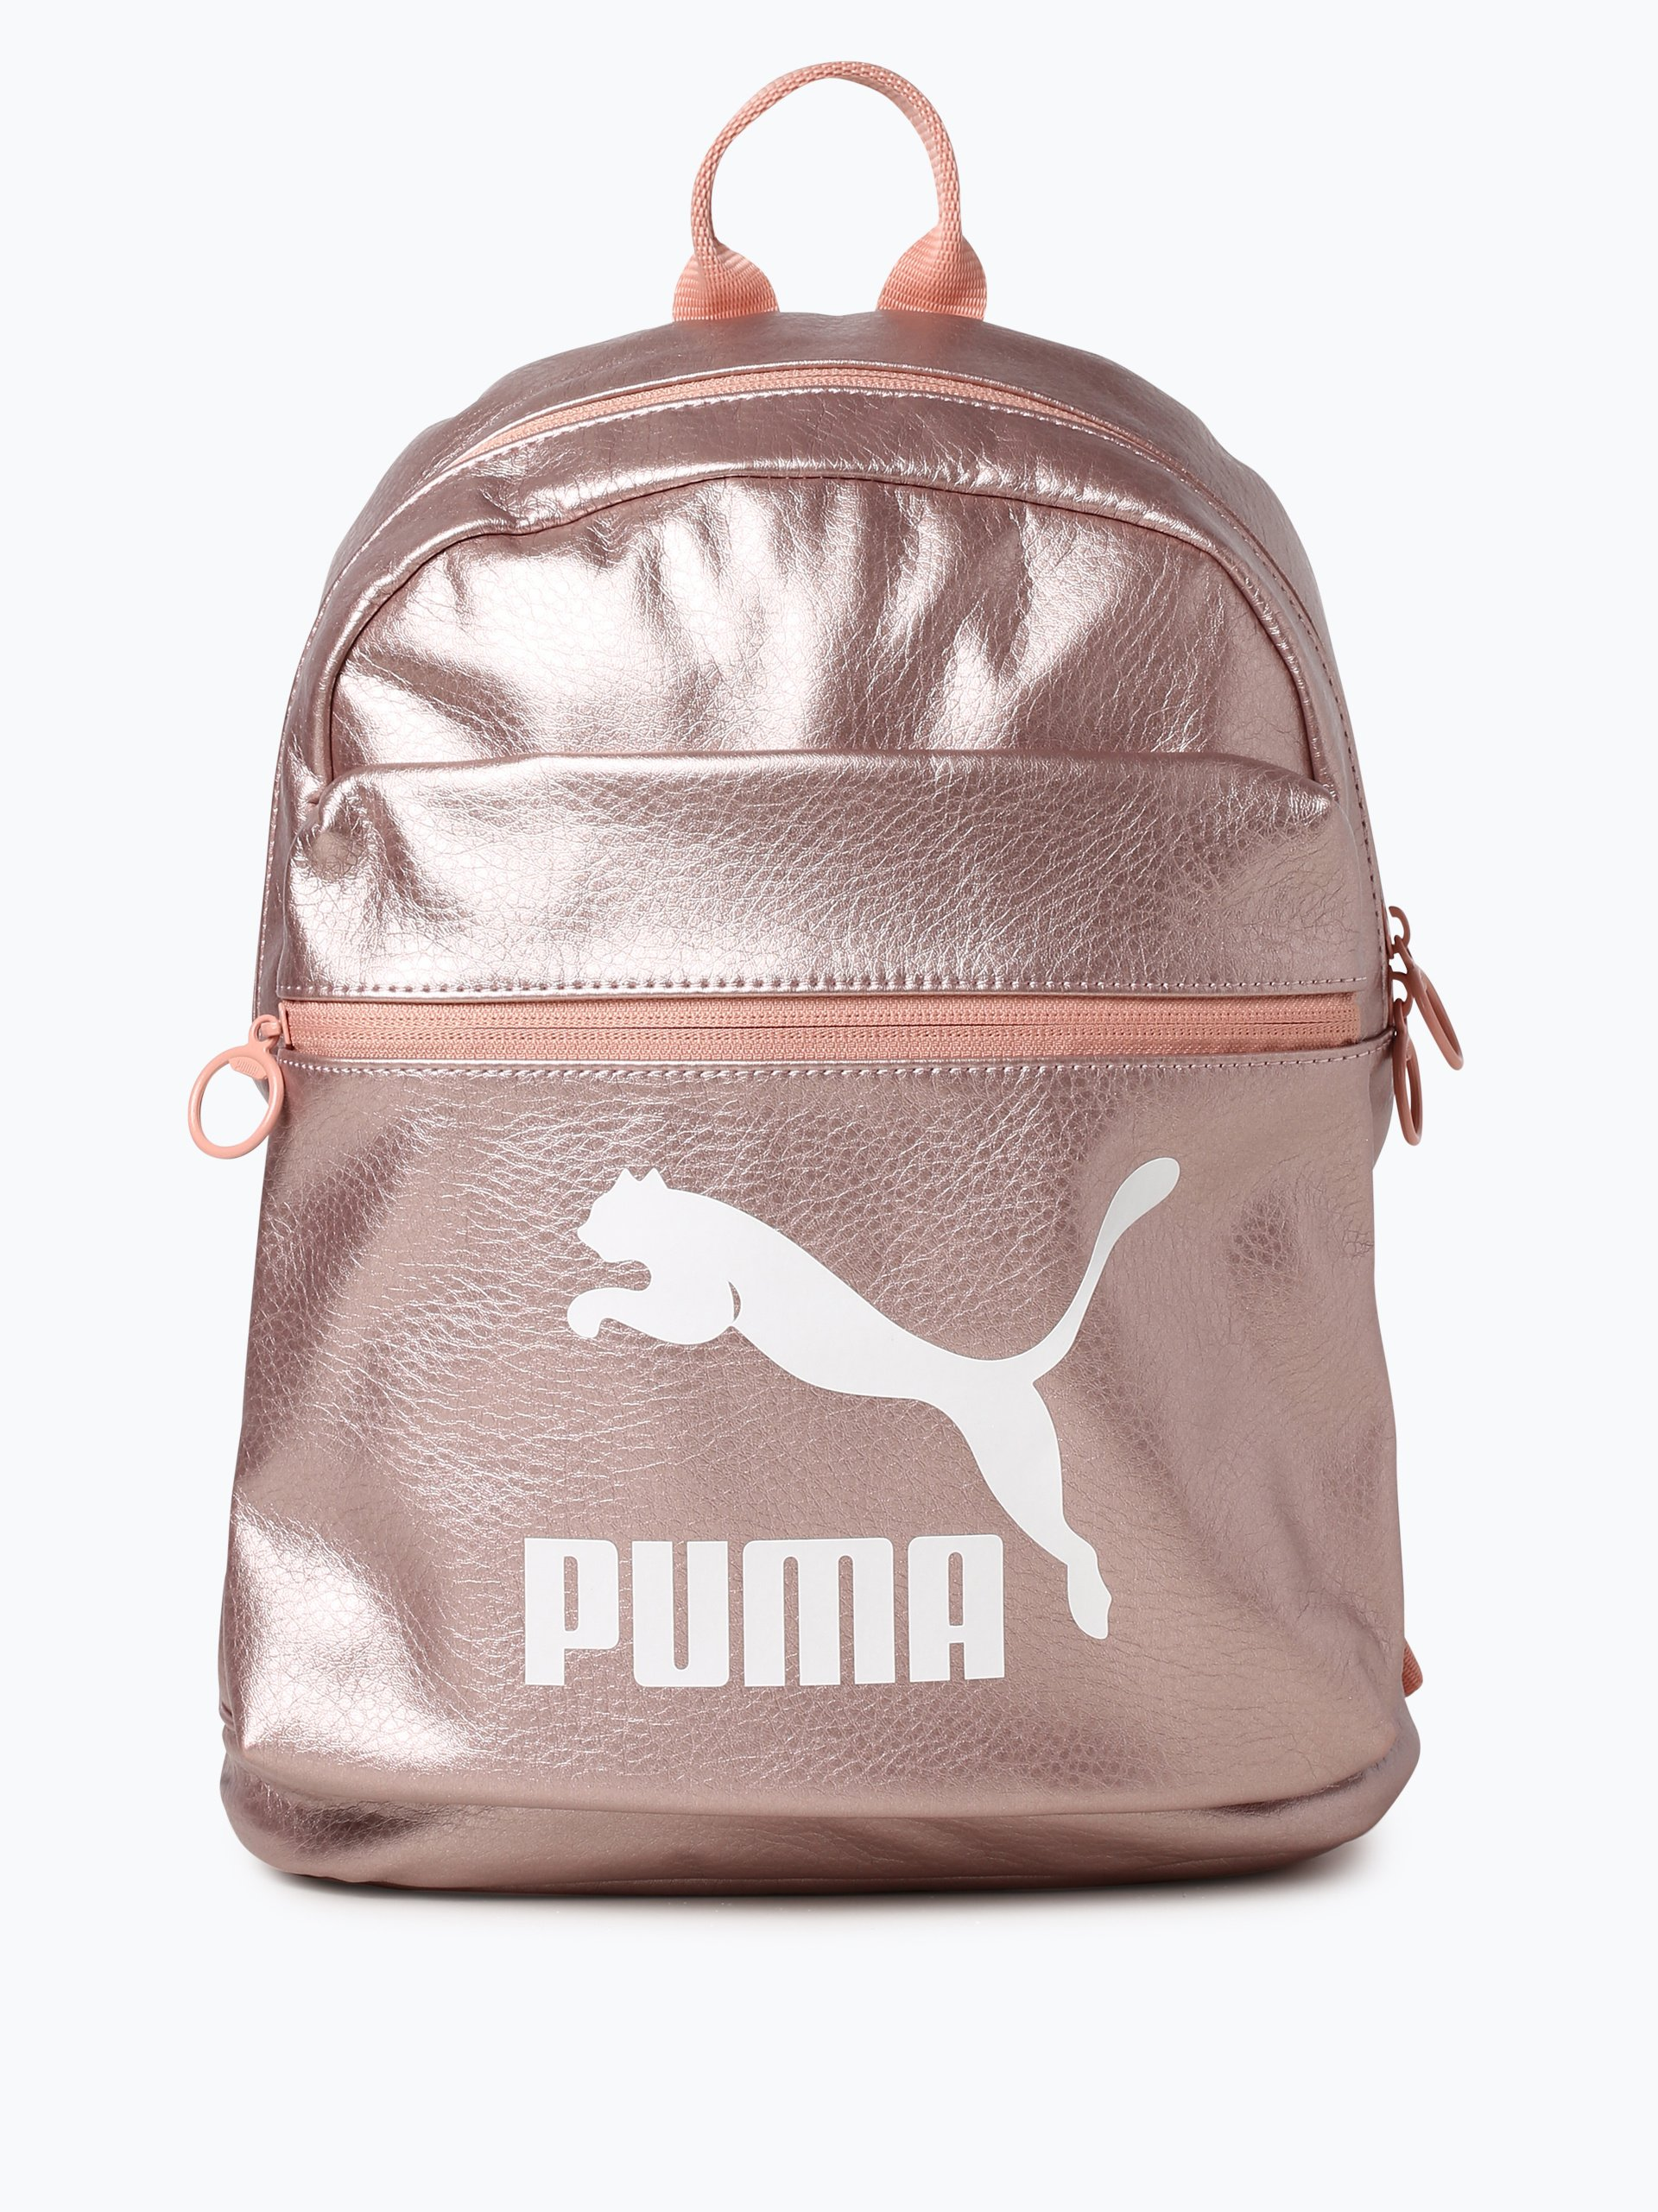 puma damen rucksack online kaufen vangraaf com. Black Bedroom Furniture Sets. Home Design Ideas